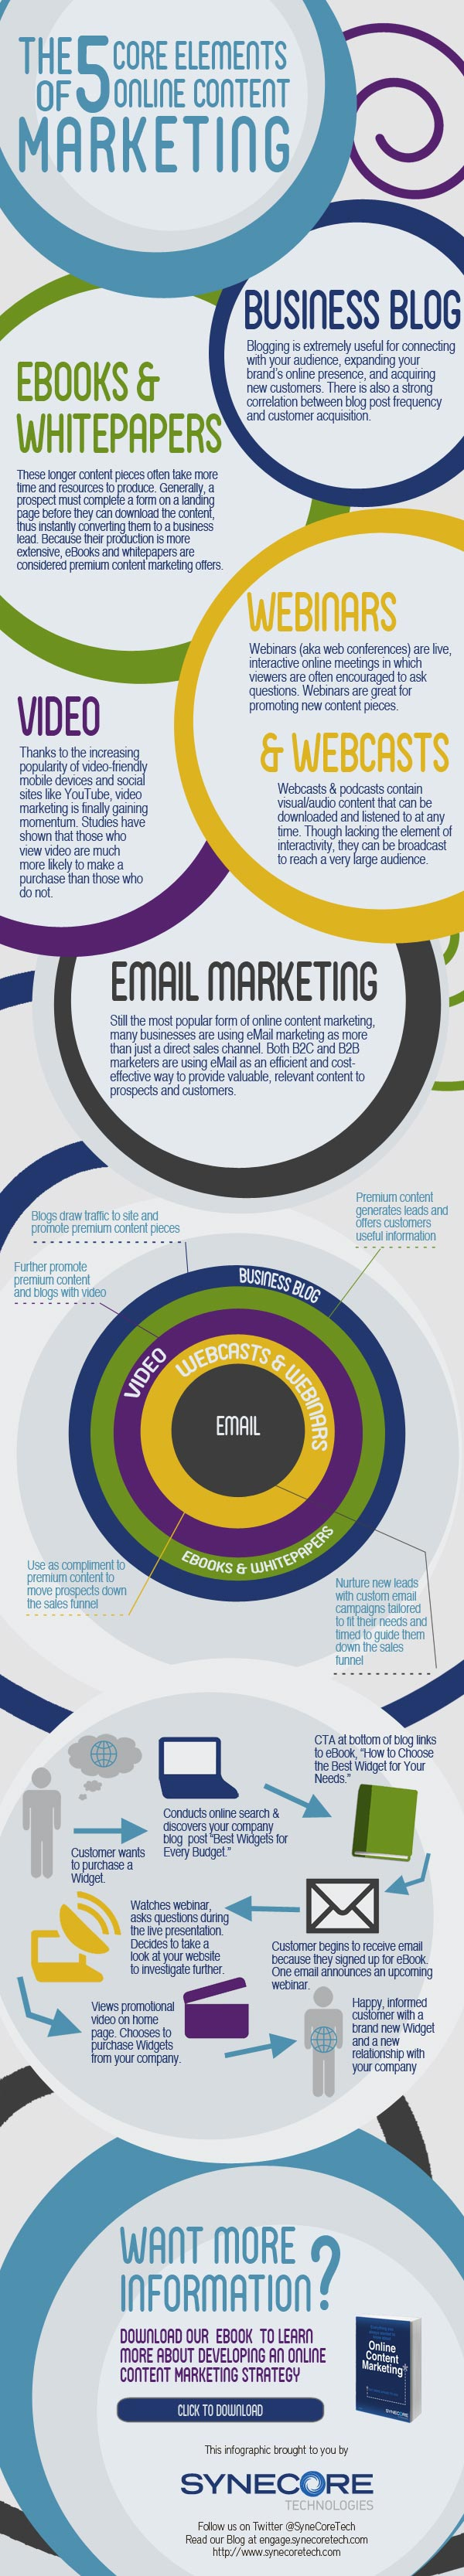 https://inblurbs.de/wp-content/uploads/2012/09/5-Elements-of-Online-Content-Marketing-Infographic.jpg